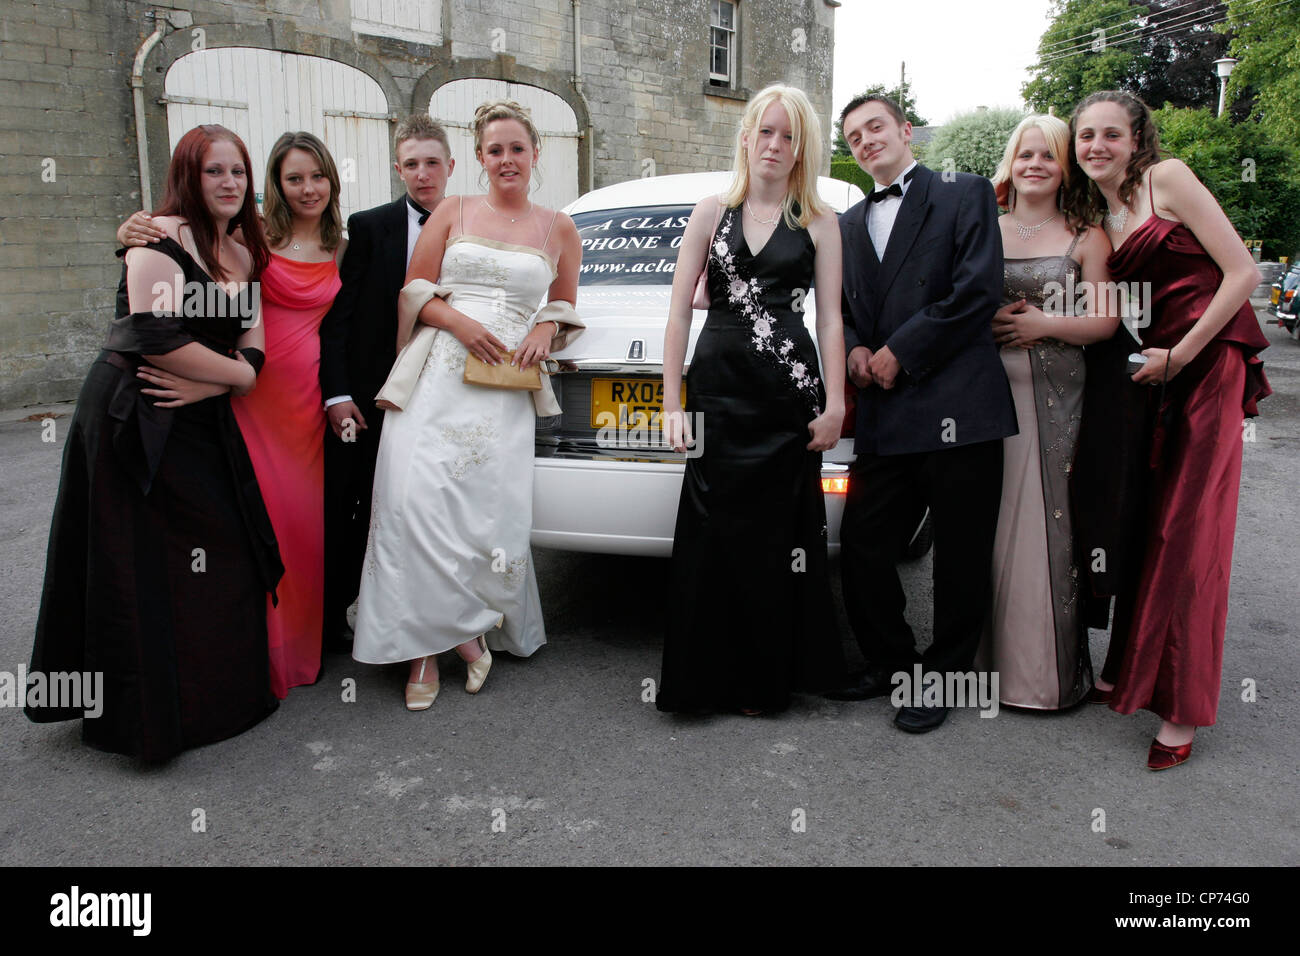 Limo Prom Limo Prom Stock Photos Limo Prom Stock Images Alamy